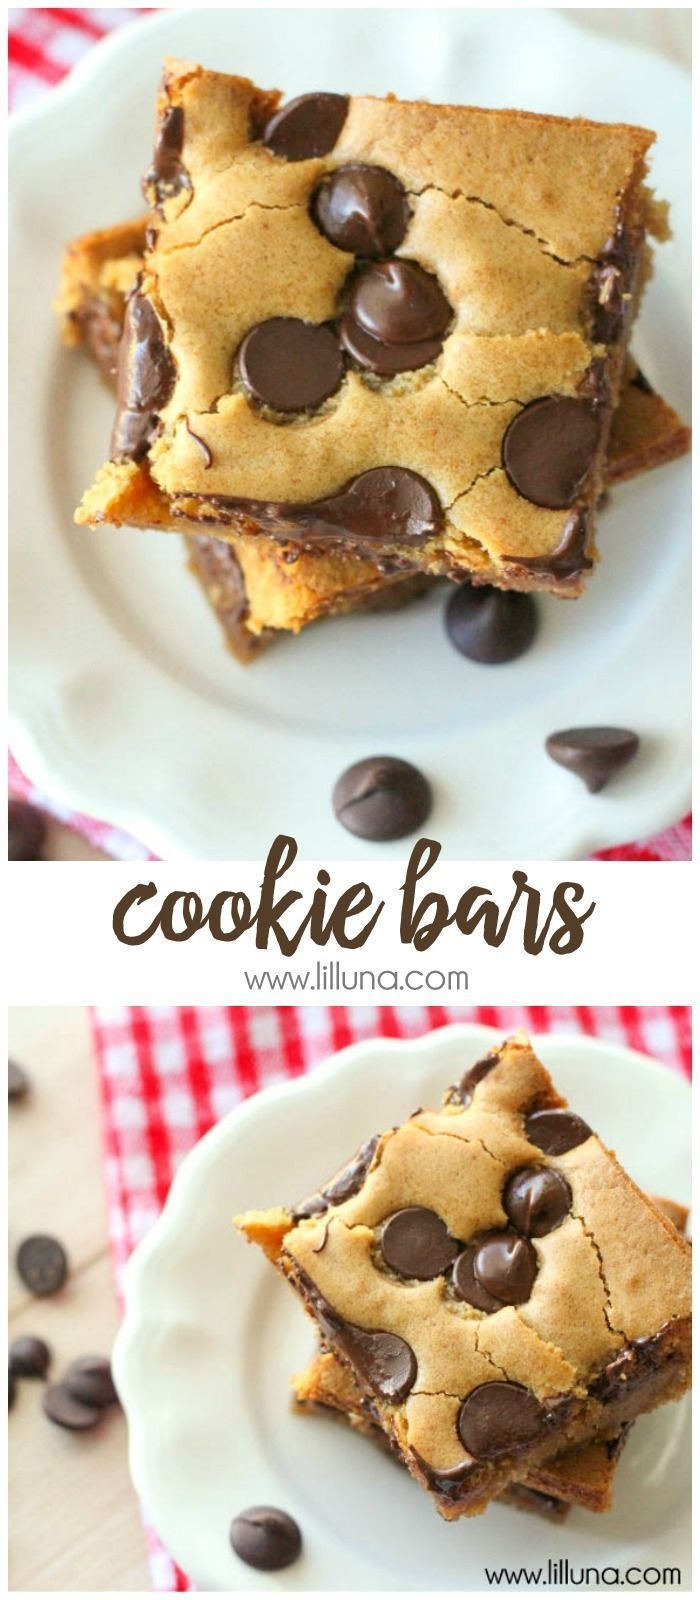 Chip Cookie Bars (aka Pan Chewies) - our family's go-to Sunday Night Dessert!Chocolate Chip Cookie Bars (aka Pan Chewies) - our family's go-to Sunday Night Dessert!